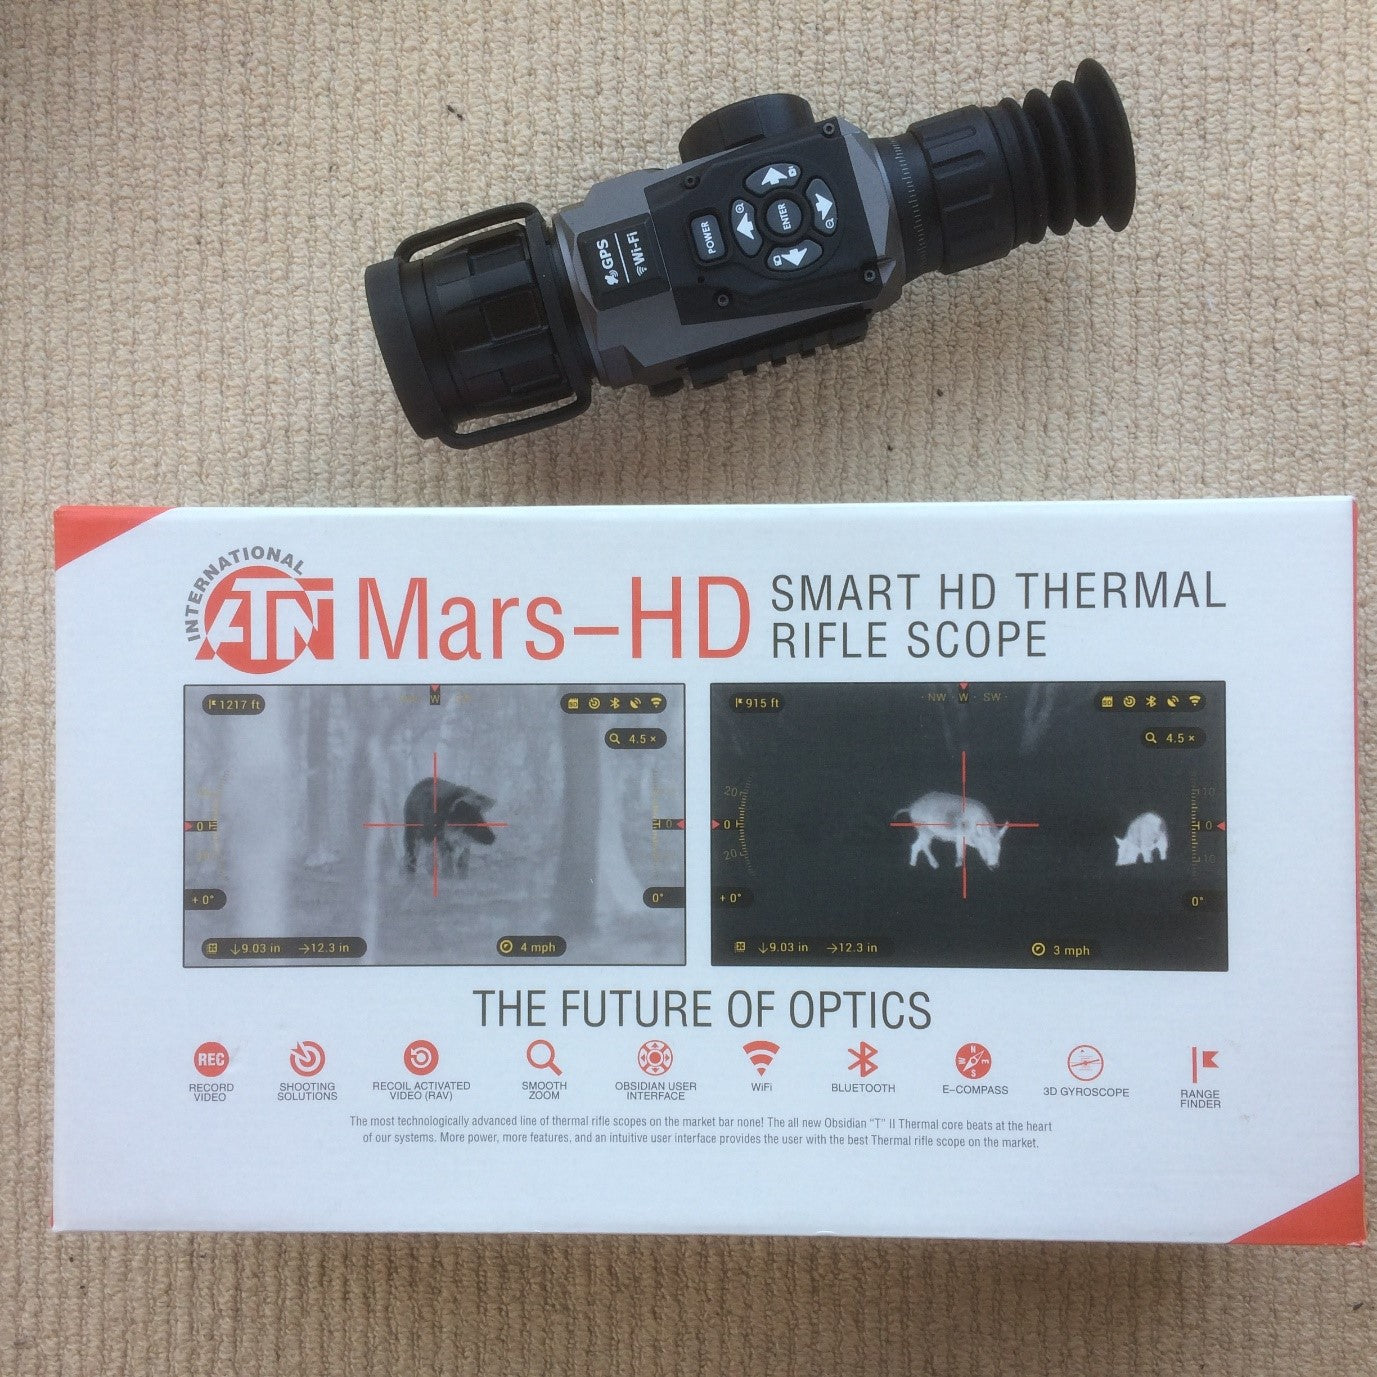 Smart HD thermal rifle scope